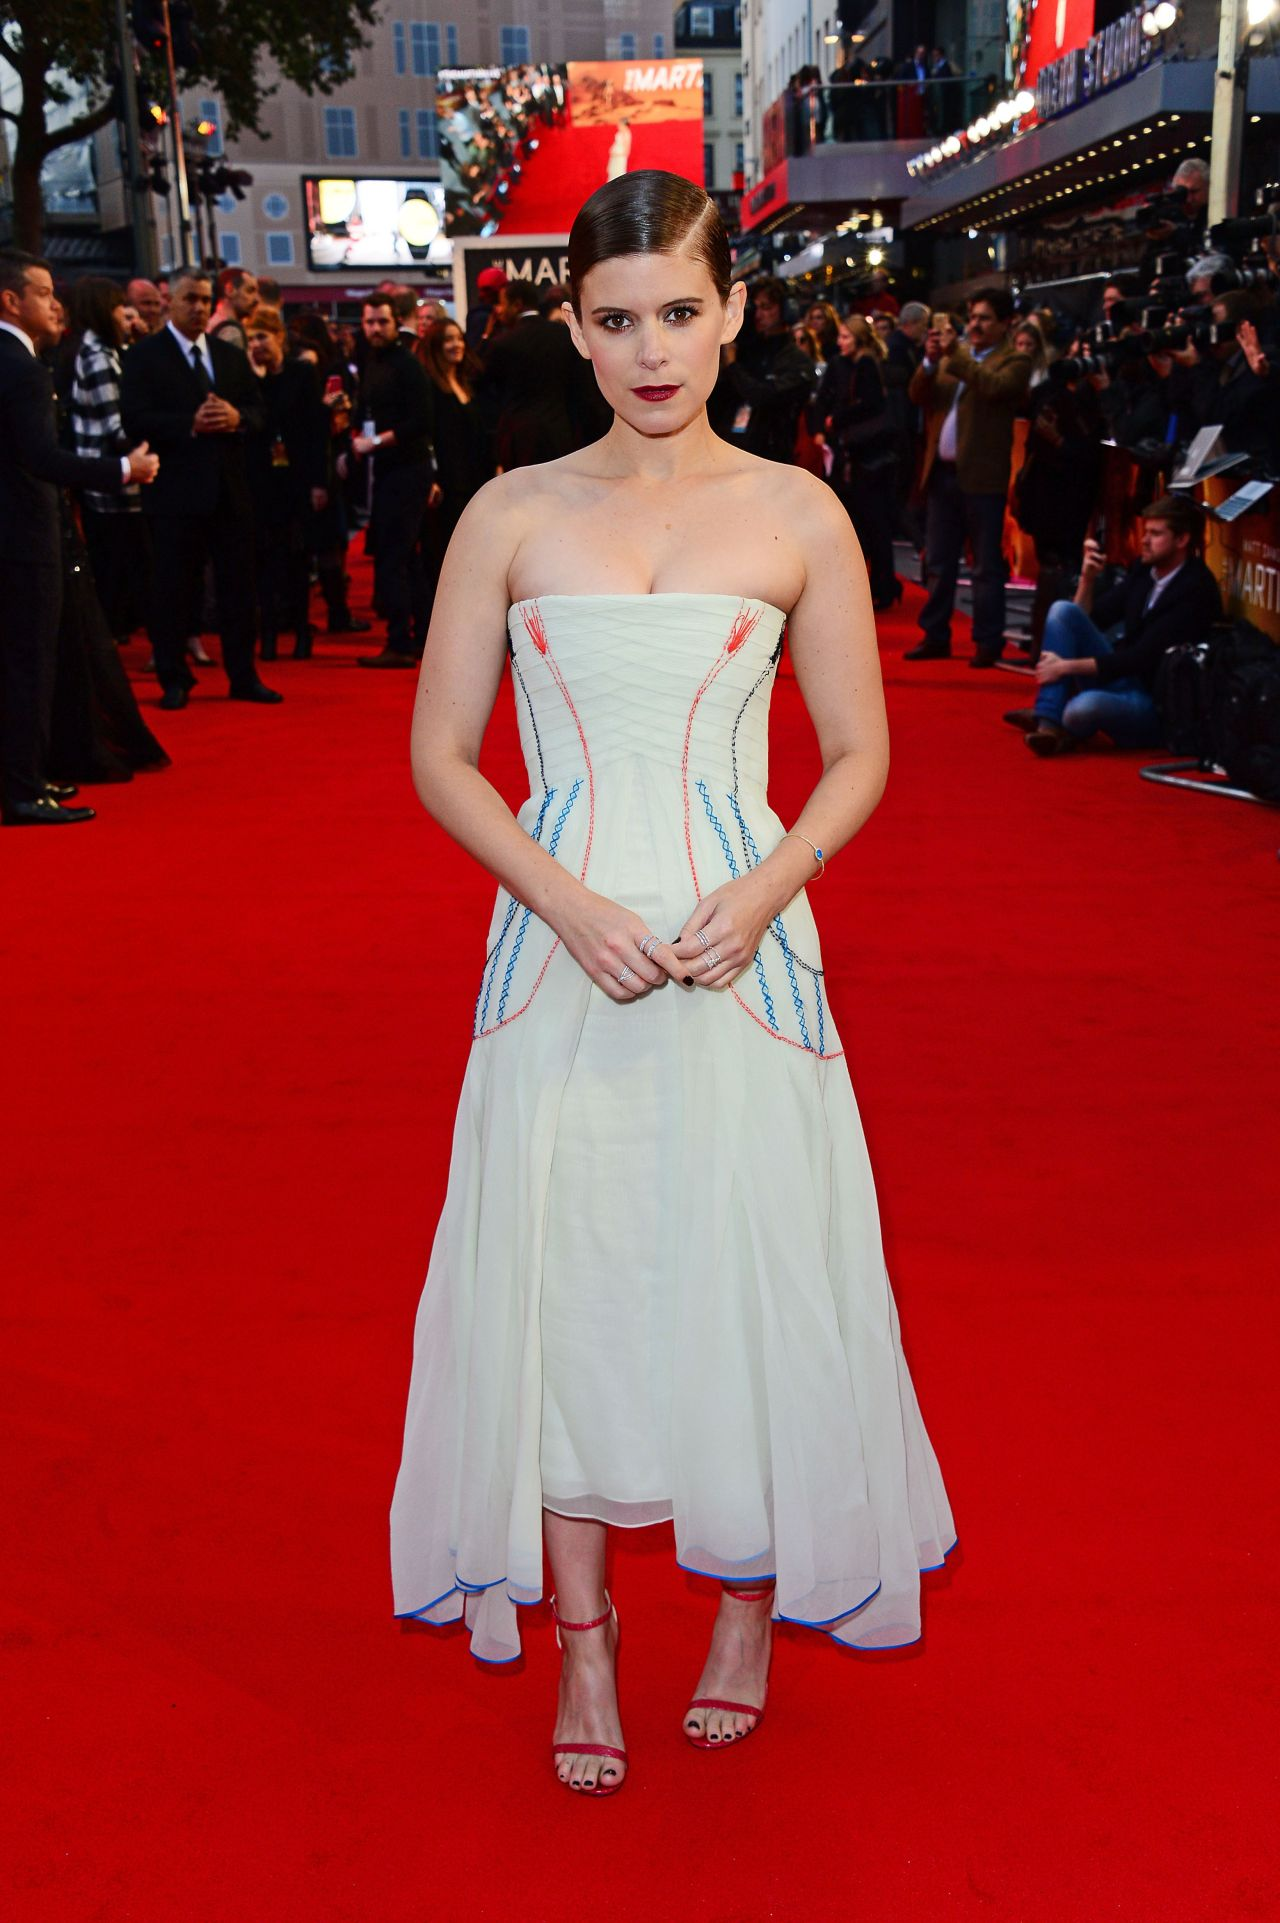 Kate Mara on Red Carpet - The Martian Premiere in London